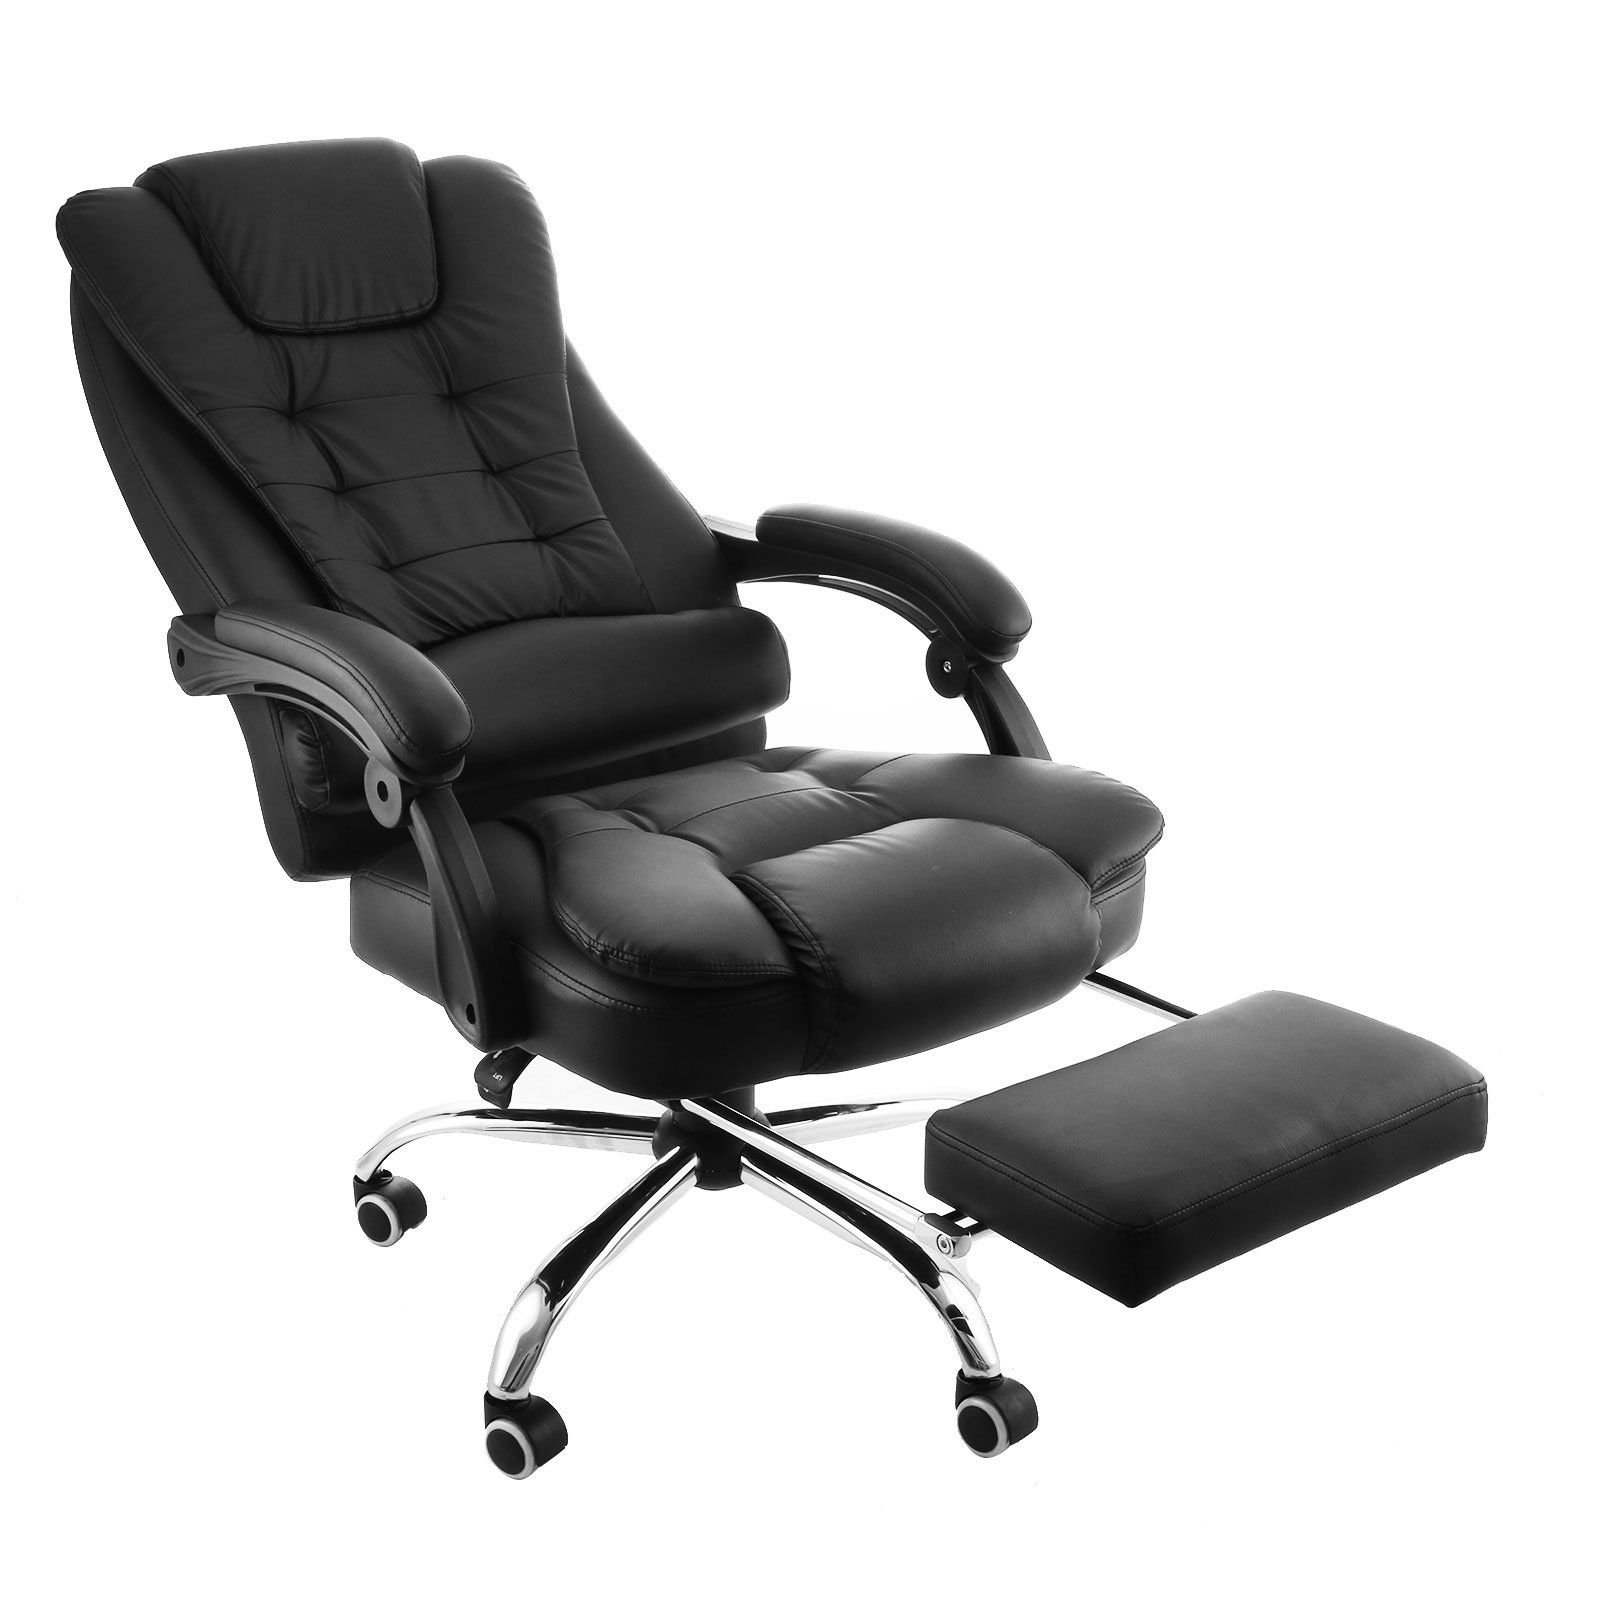 The 16 Best Ergonomic Office Chairs 2020 + Editors Pick in